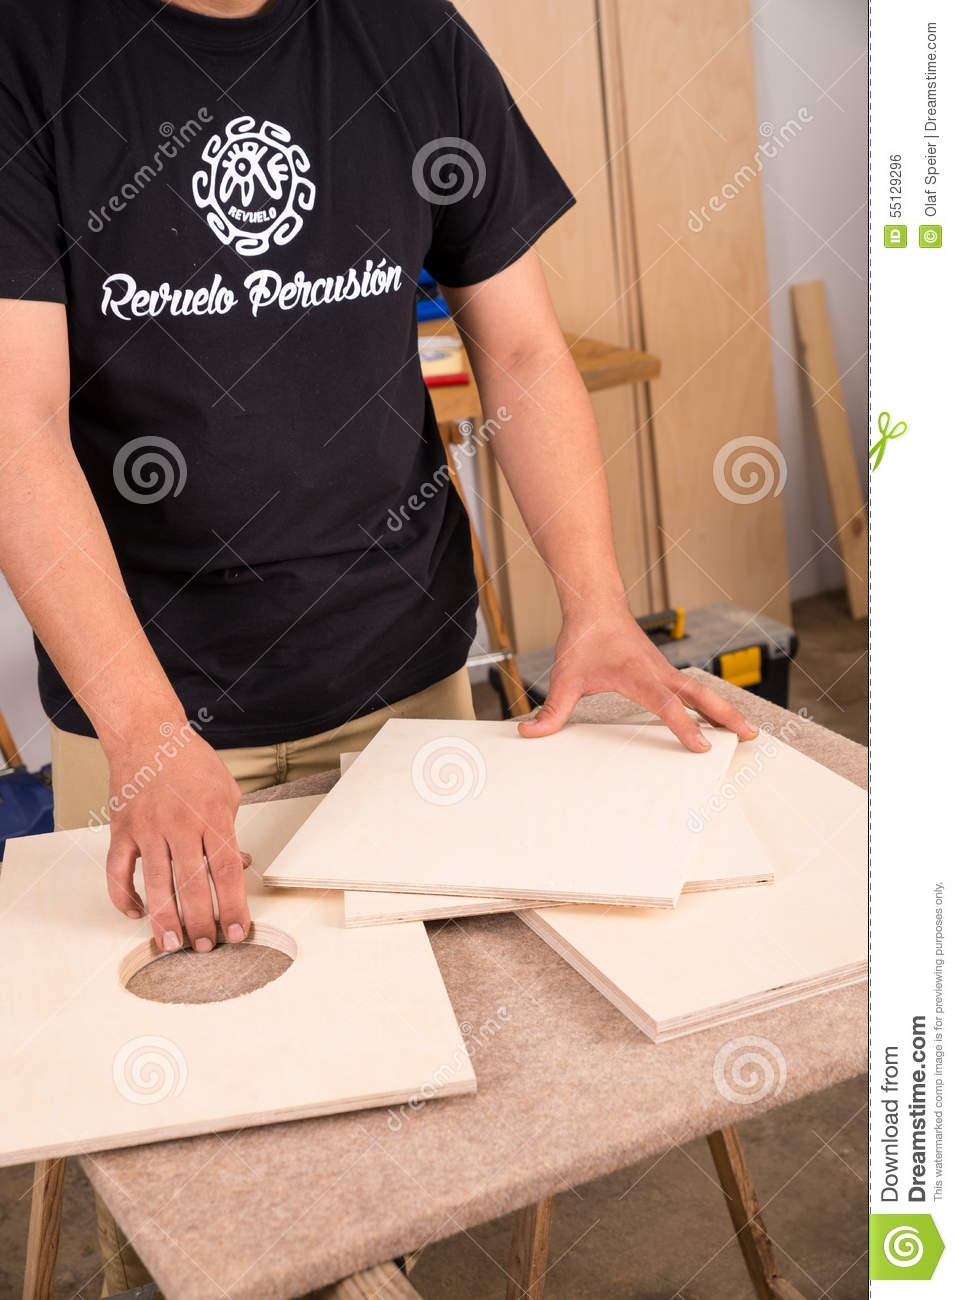 artistan assembling a precussion instrument stock photo image of